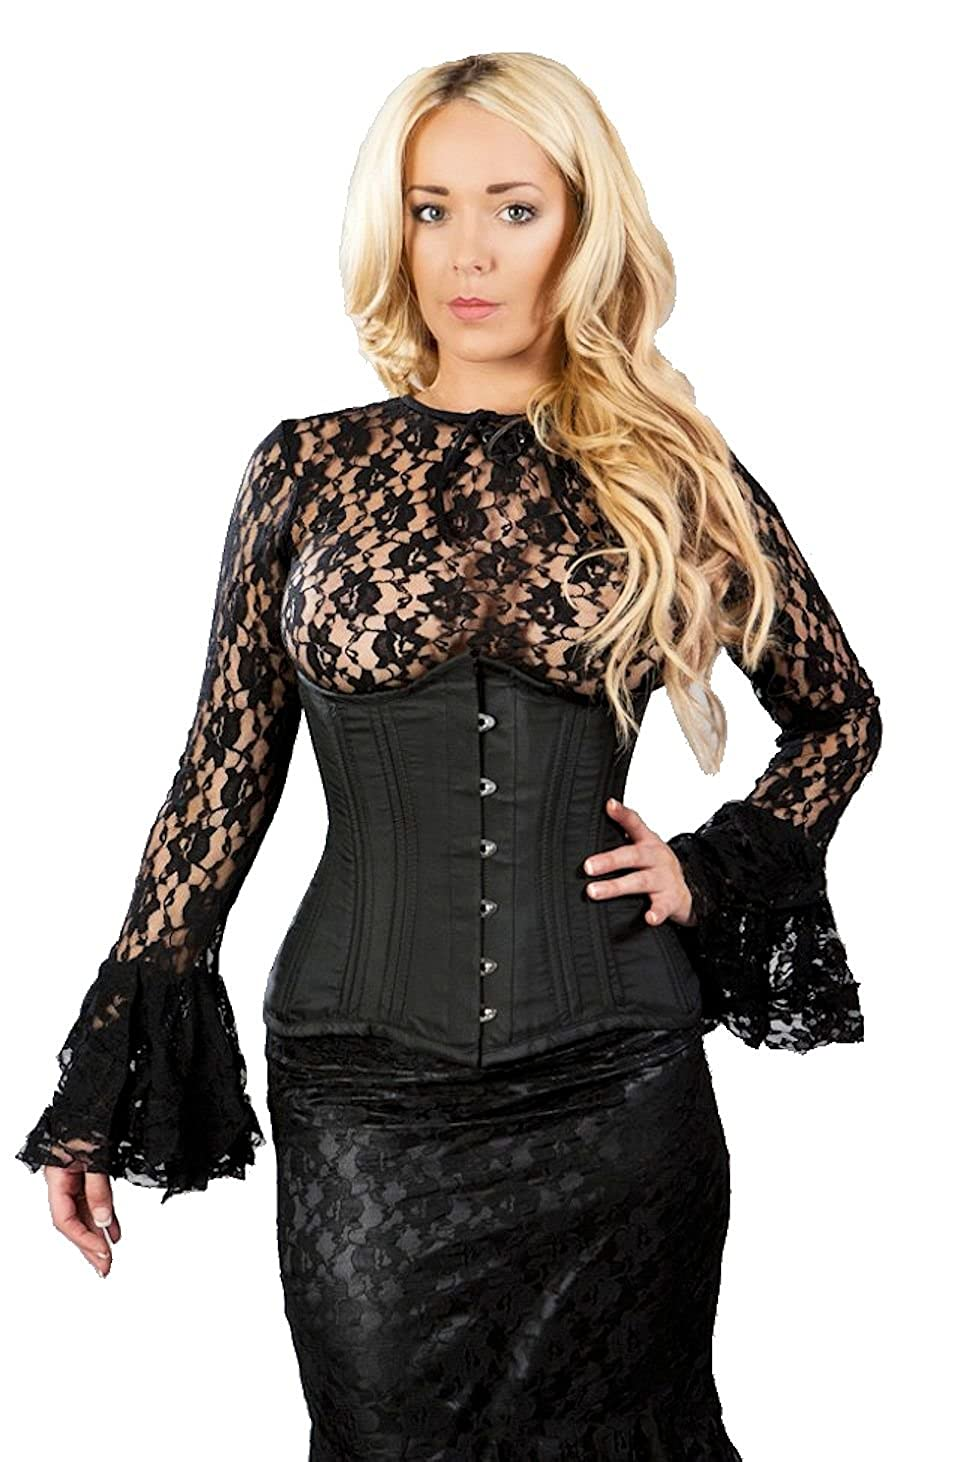 Steampunk Vests and Wraps Burleska Womens Gypsy Peasant Underbust Corset Top  AT vintagedancer.com